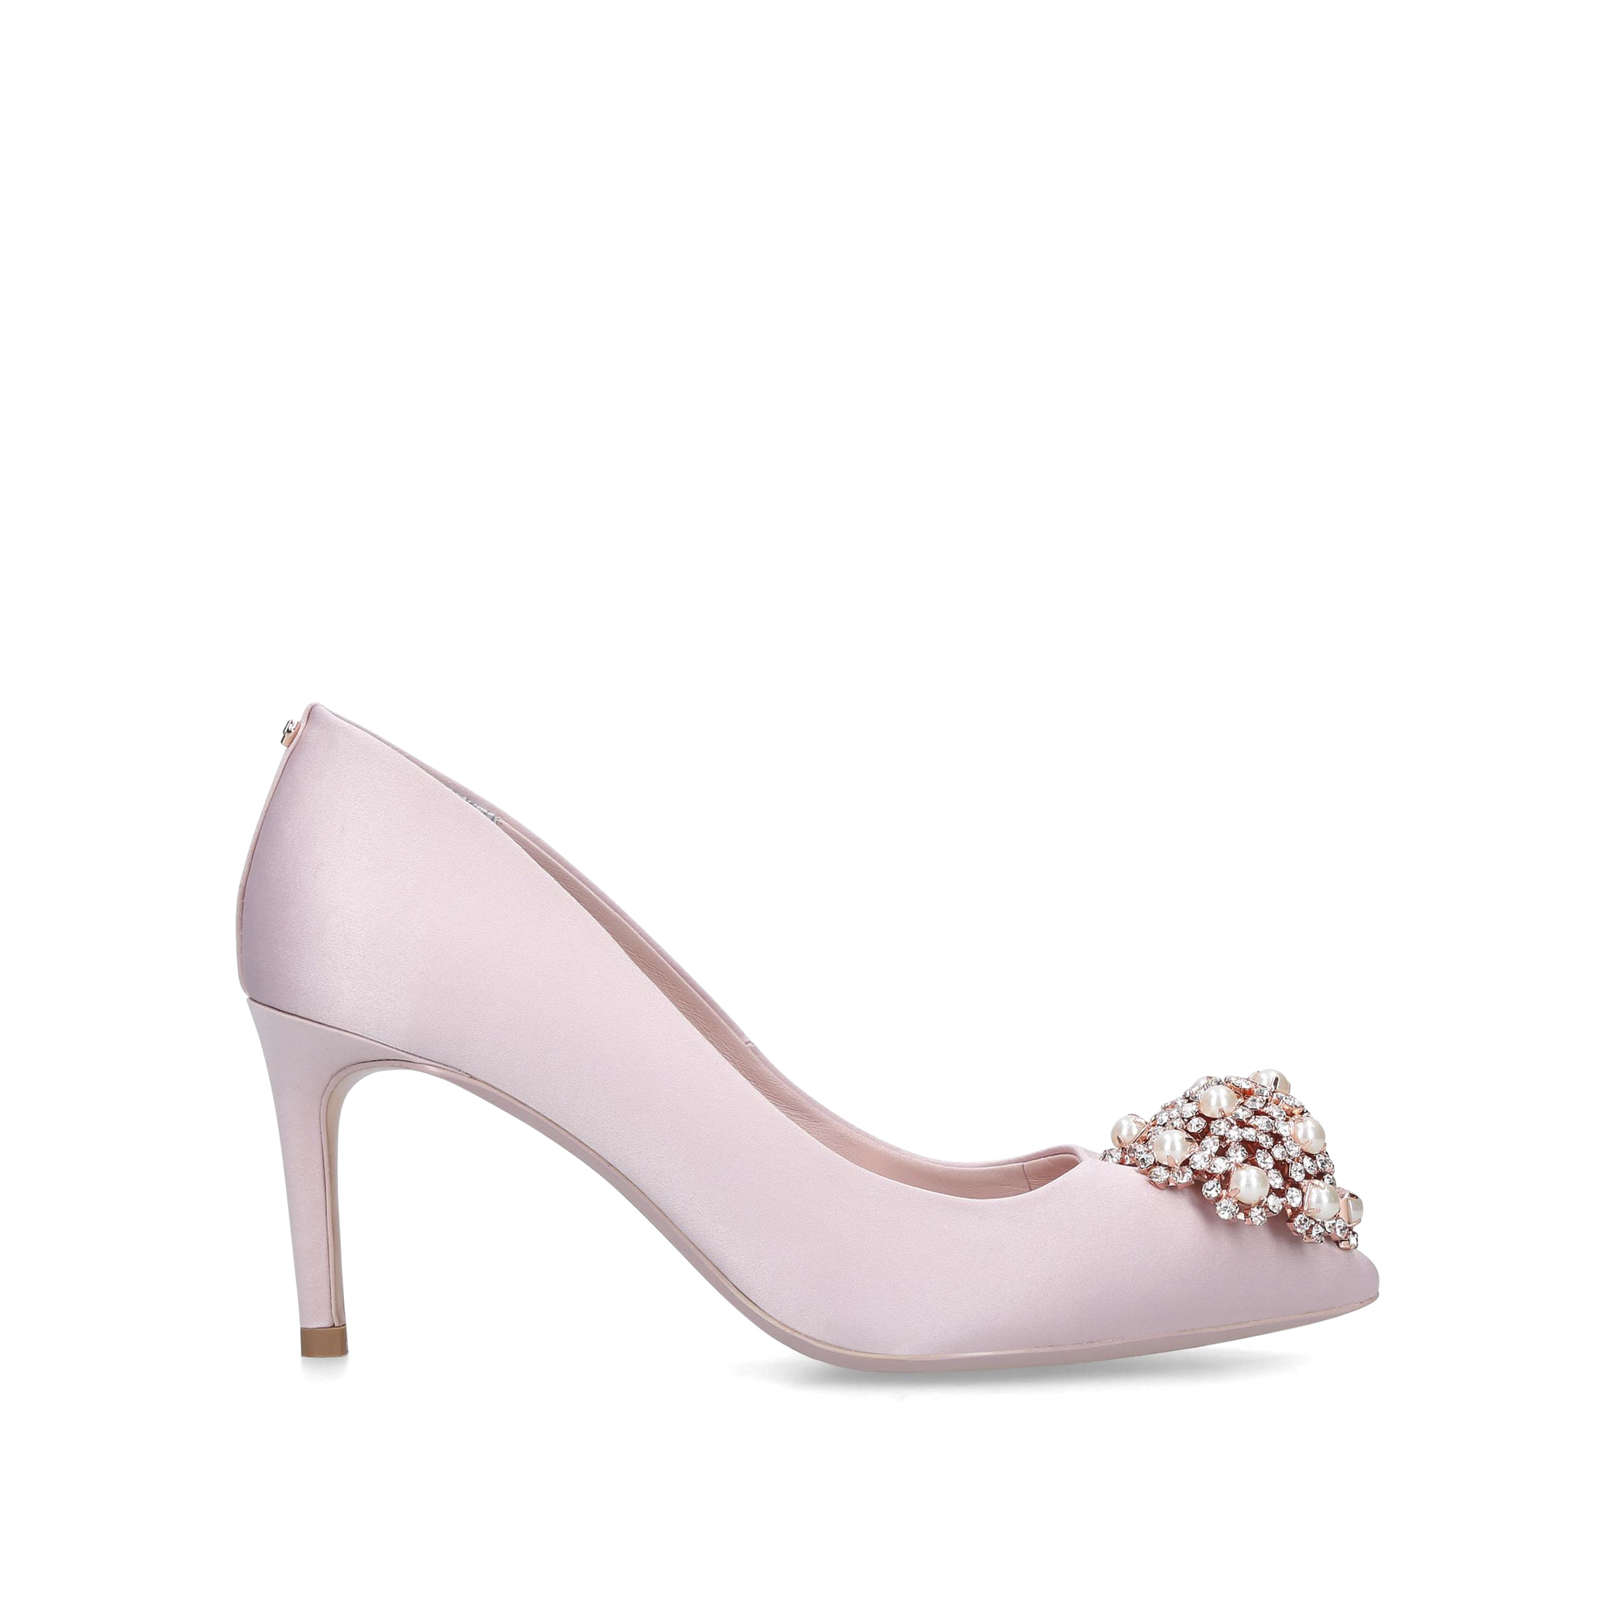 041bdcf2019 DAHRLIN Dahrlin Ted Baker Occasion High Heel +60Mm Pale Pink by TED BAKER